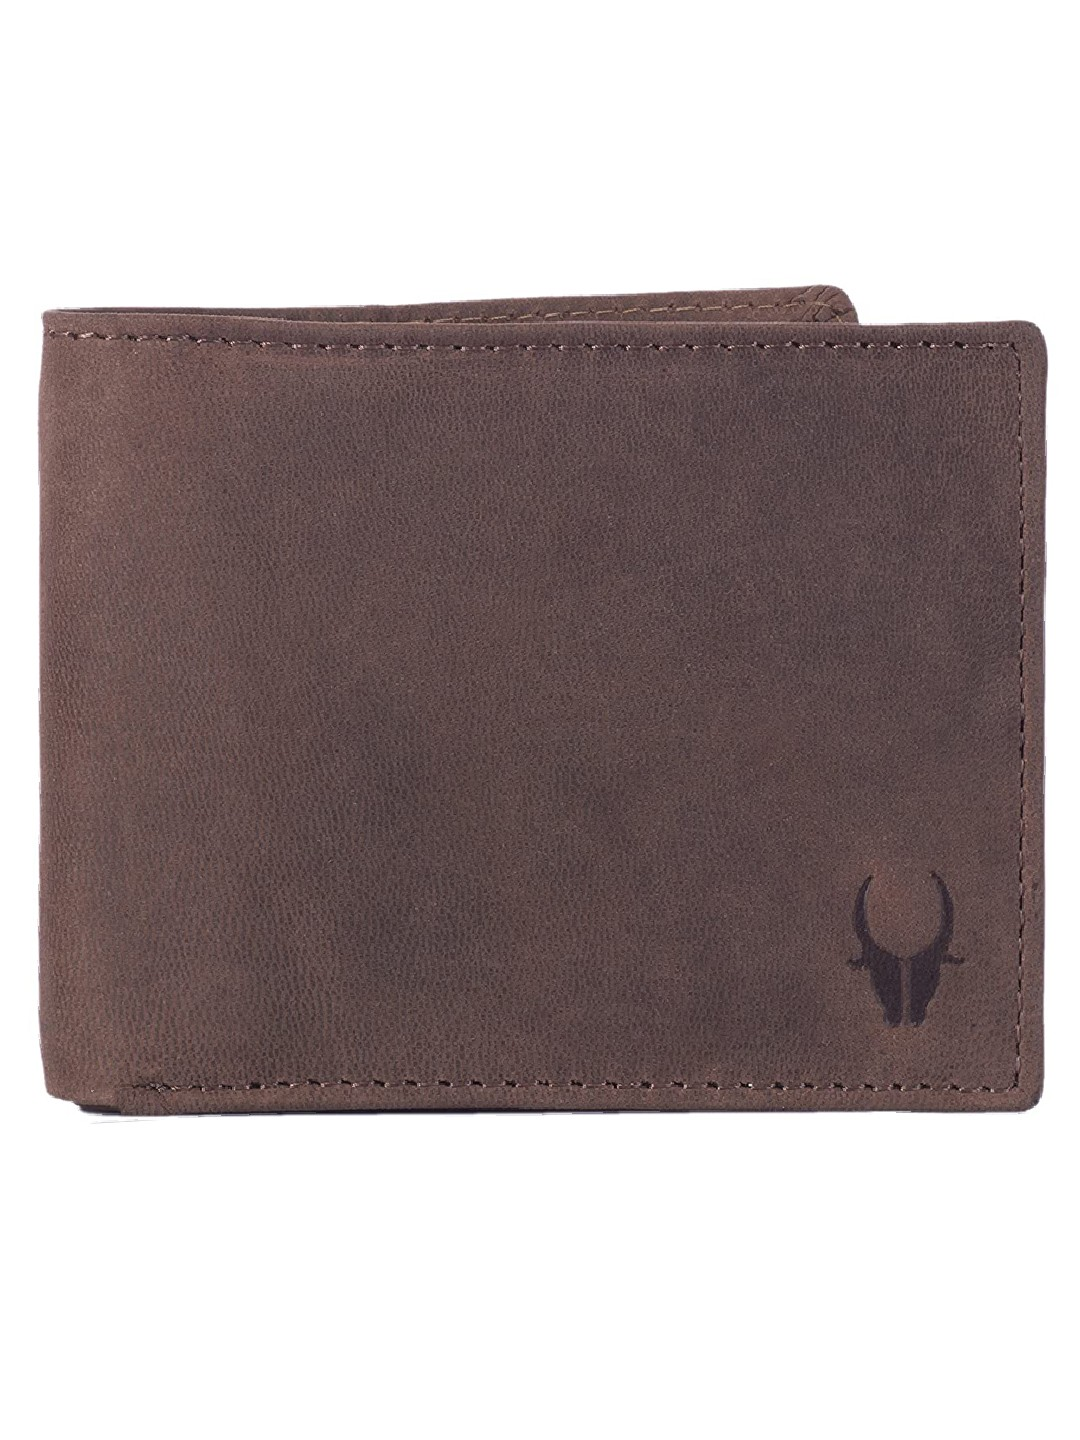 WildHorn | WildHorn RFID Protected Genuine High Quality Leather Brown Wallet for Men